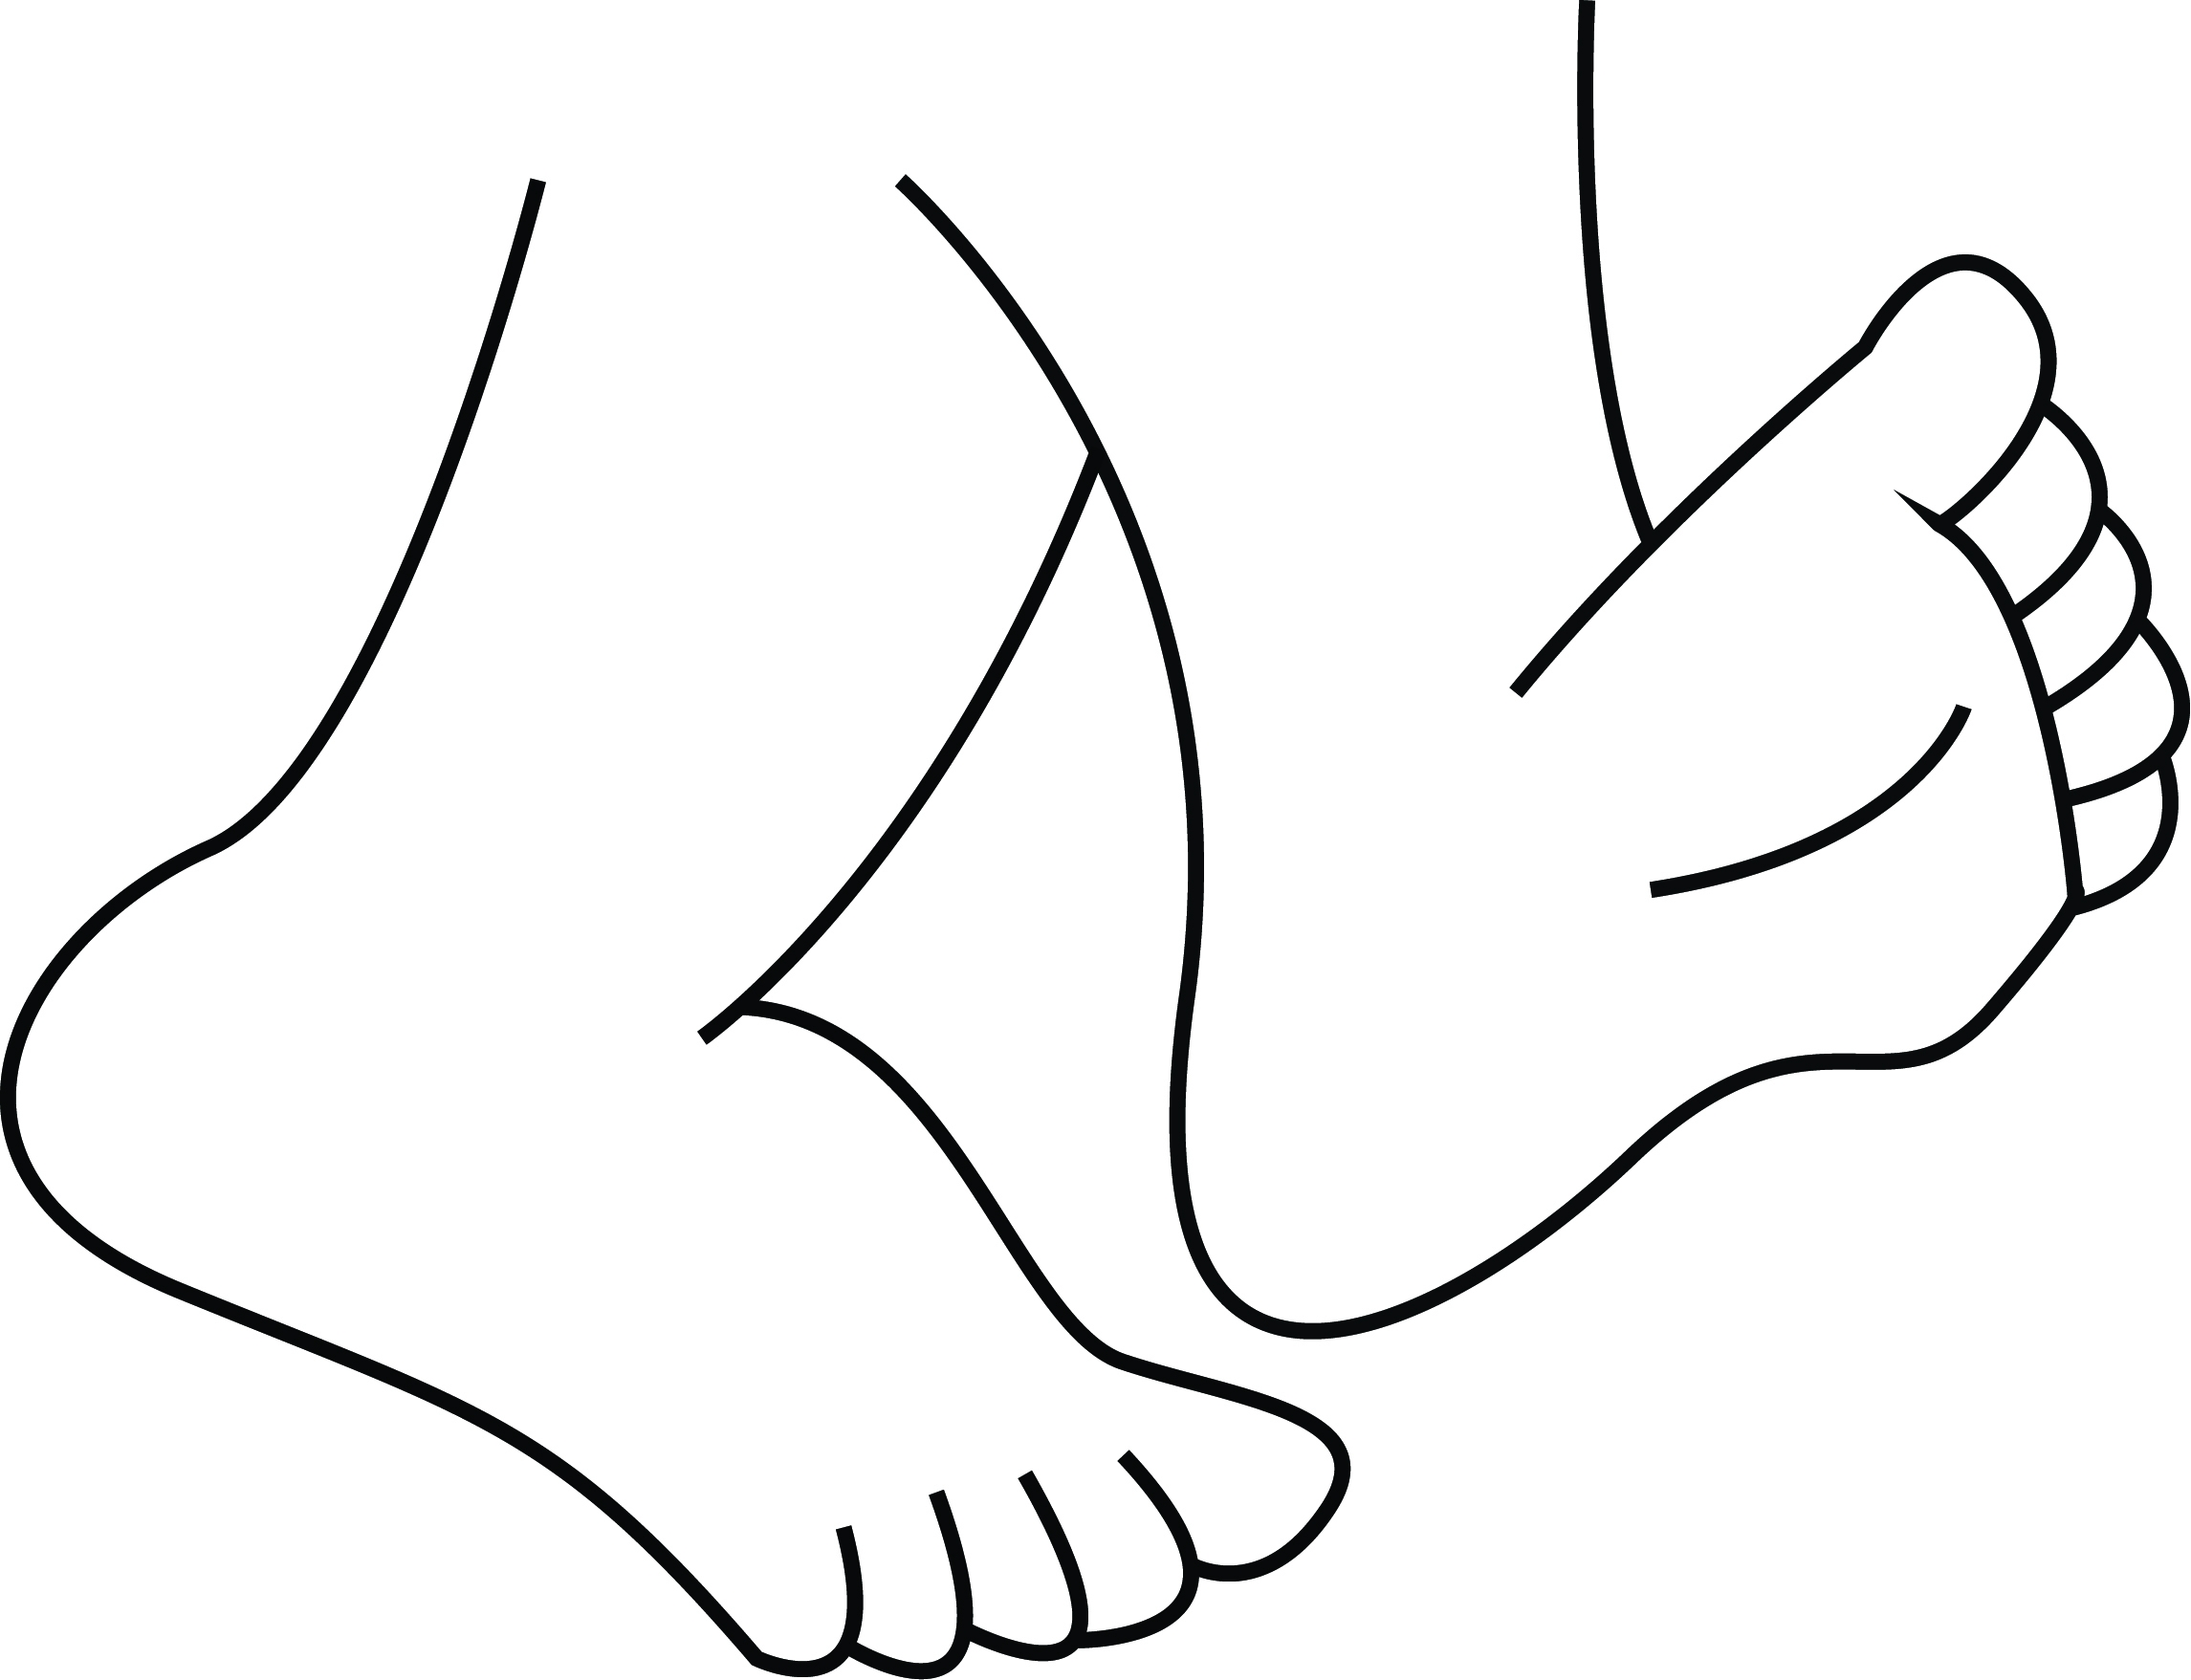 Feet clipart. Best of walking gallery